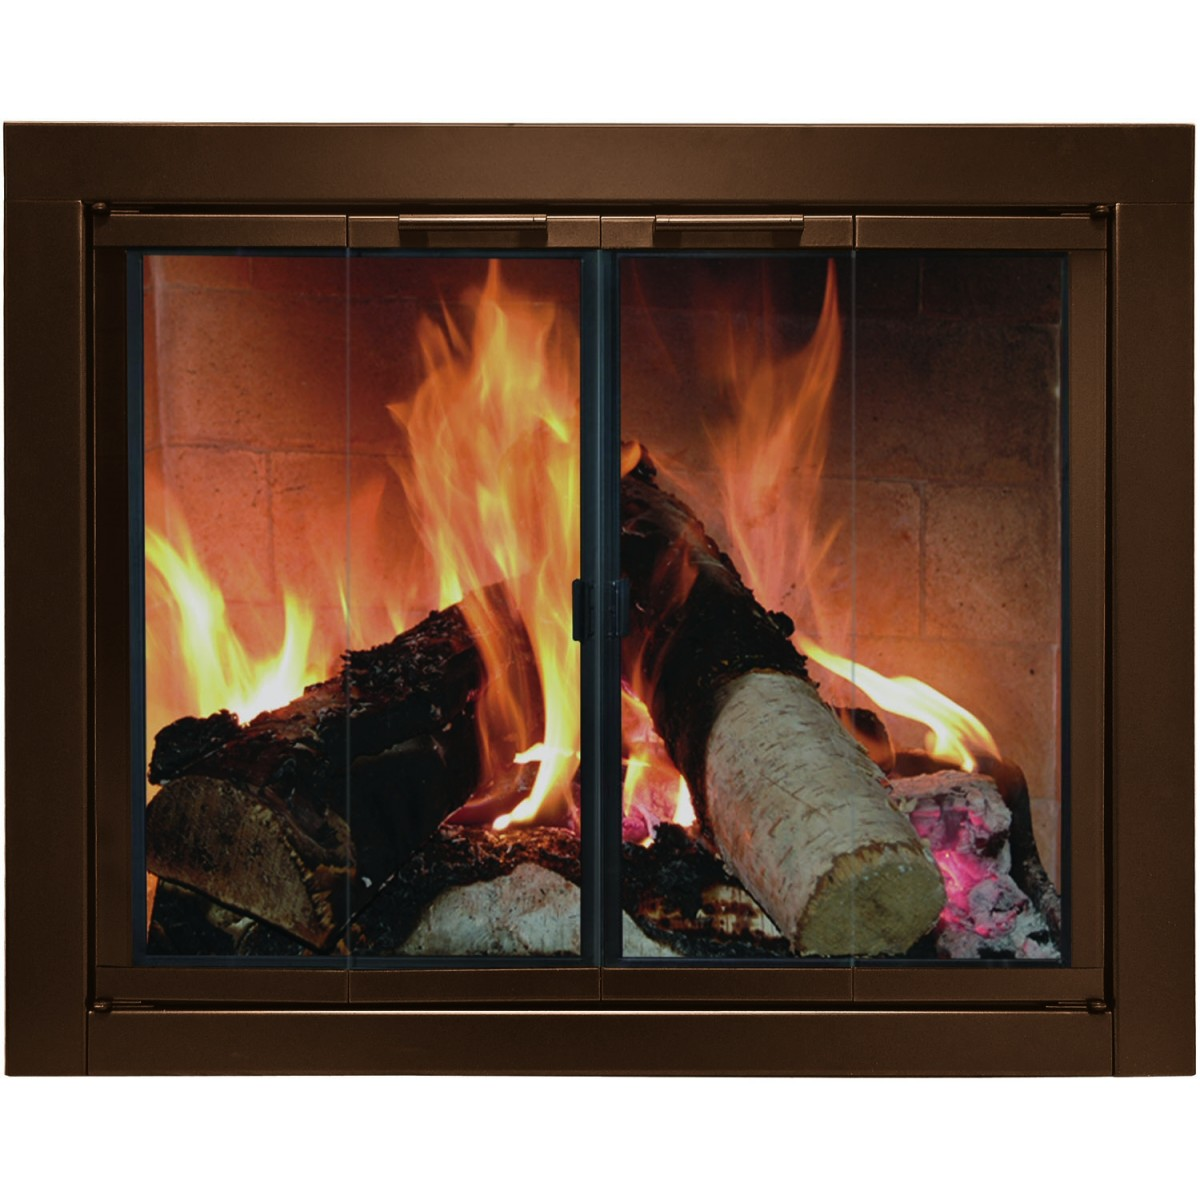 Glass Doors of Fireplace - Open or Closed